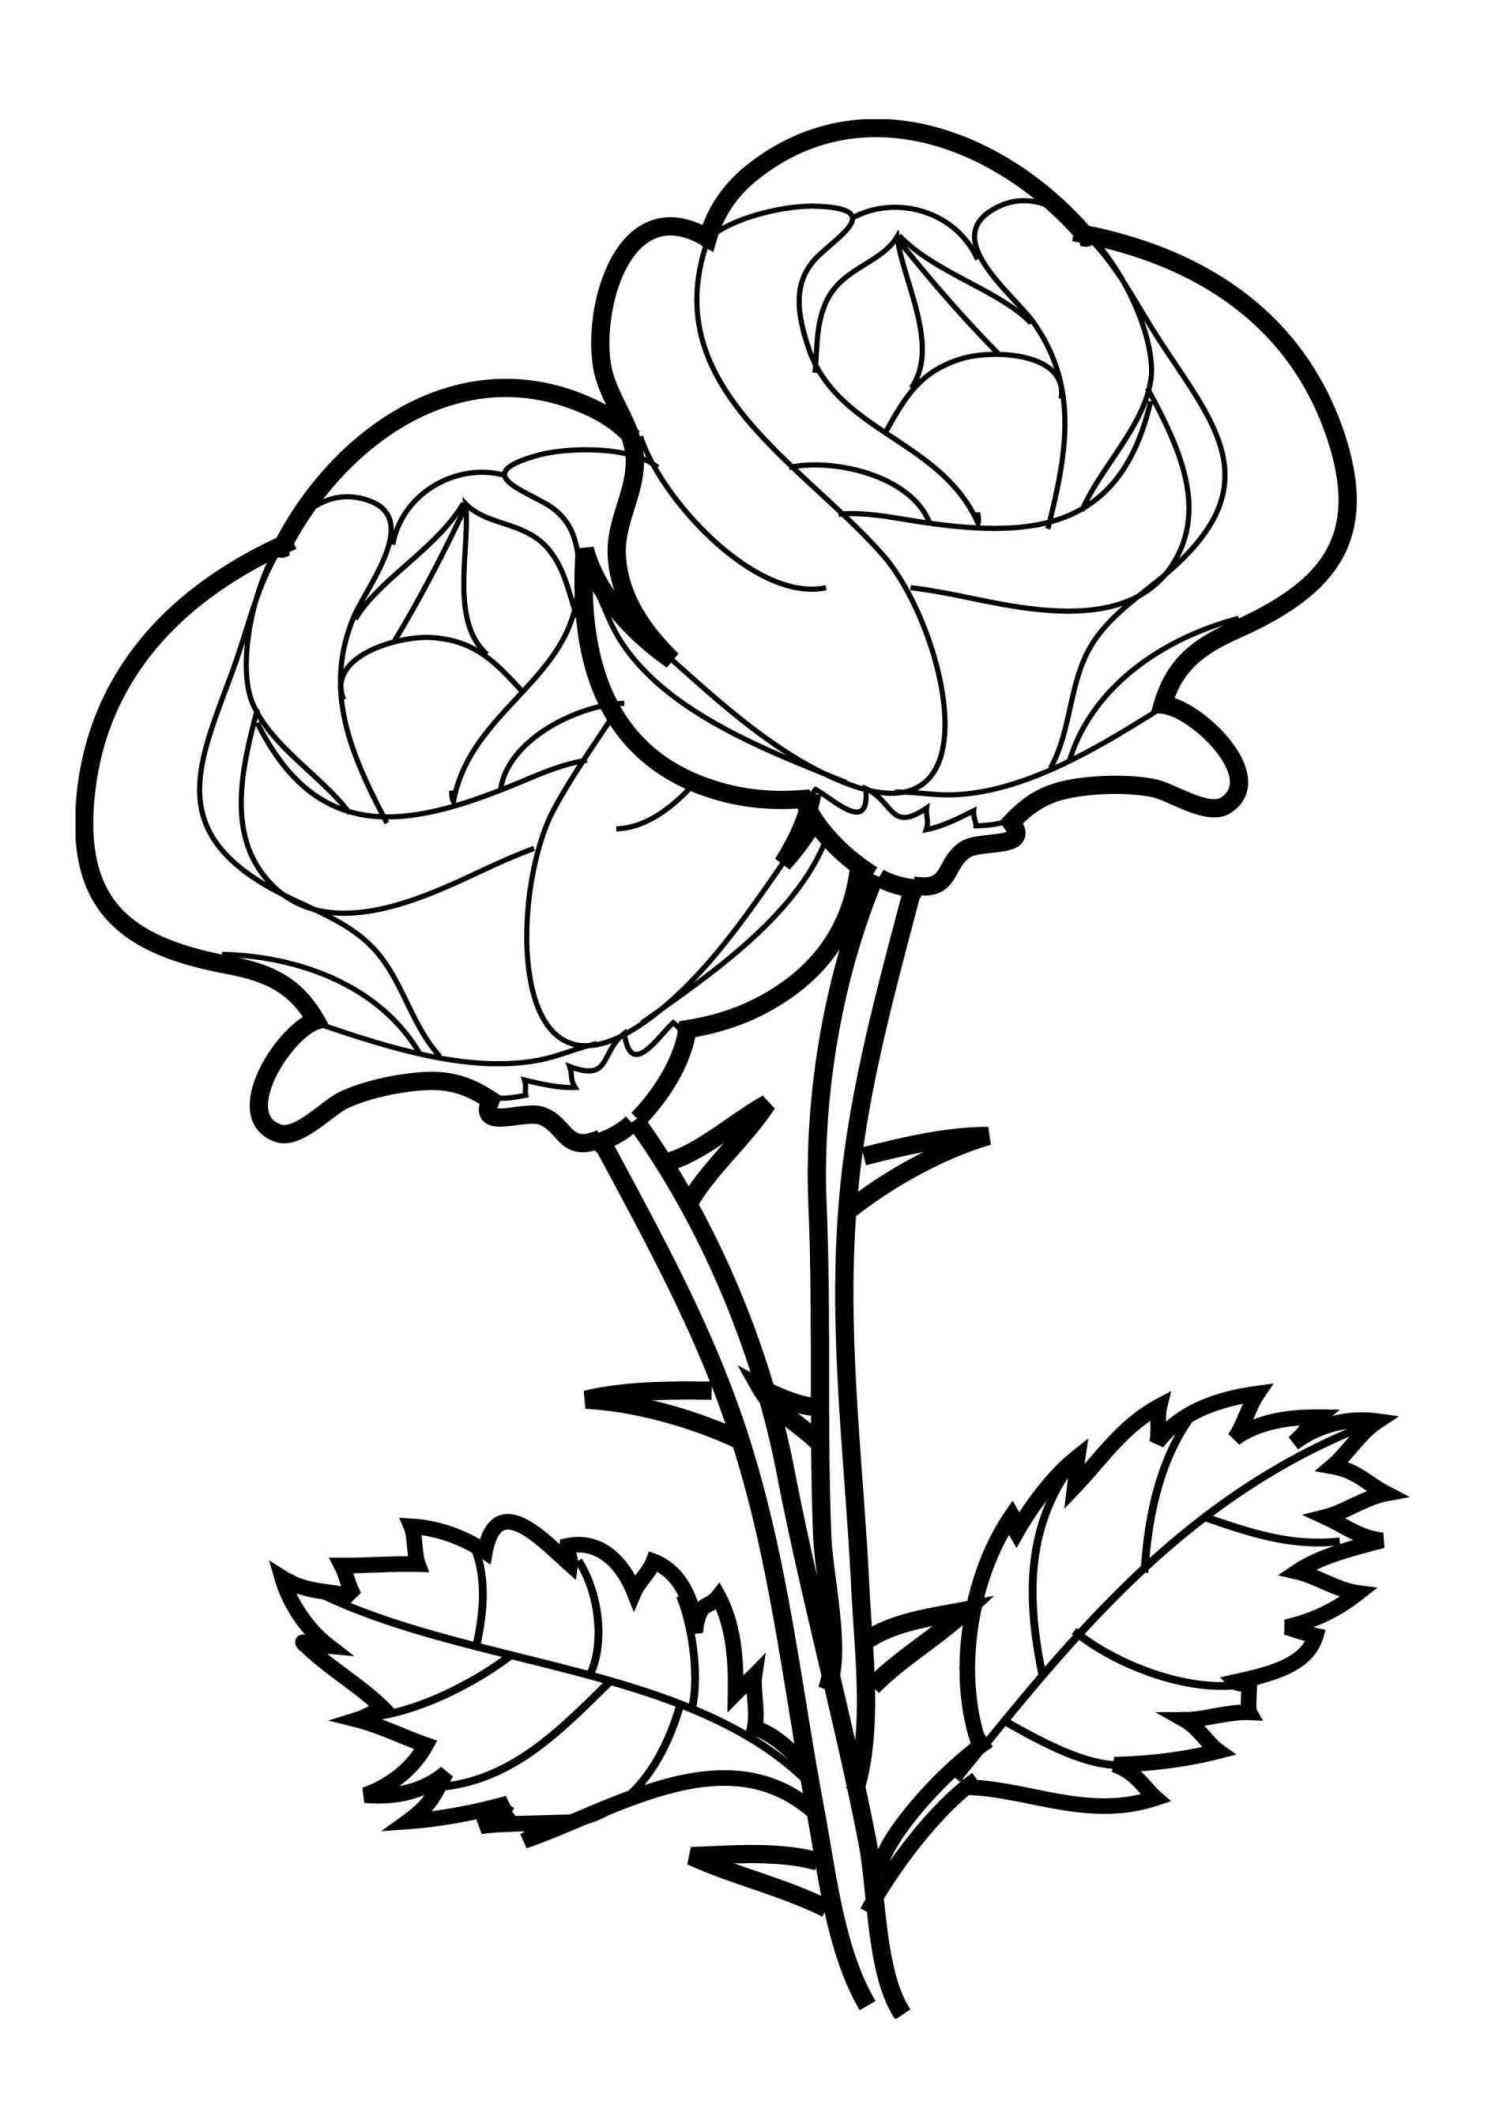 1503x2101 Flower Realistic Rose Line Drawing Page Printable Coloring Sheets